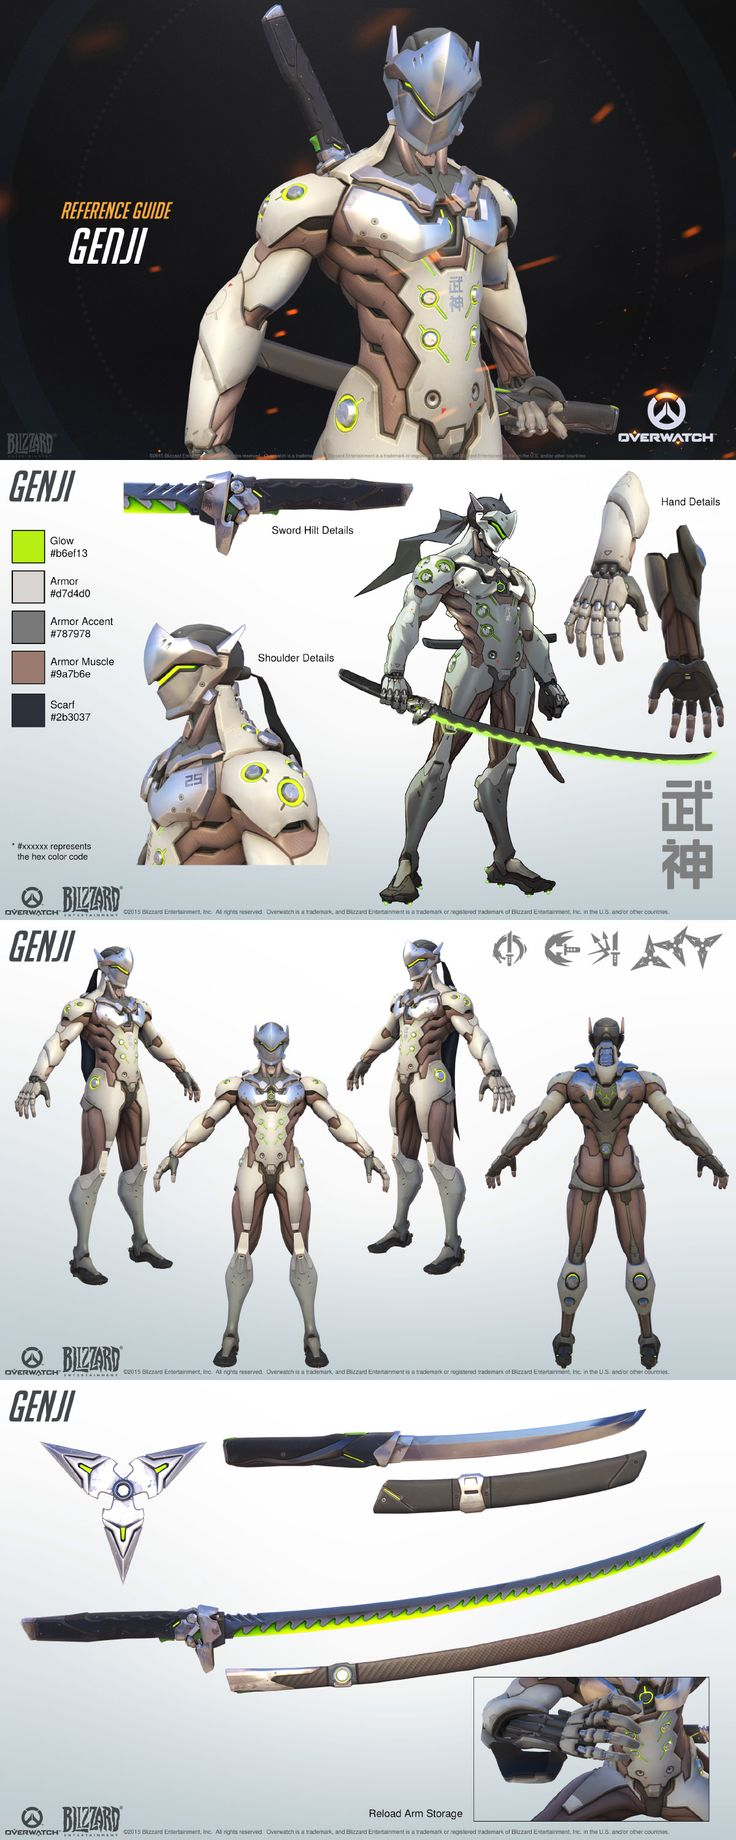 21 best overwatch cosplay reference images on pinterest | strands